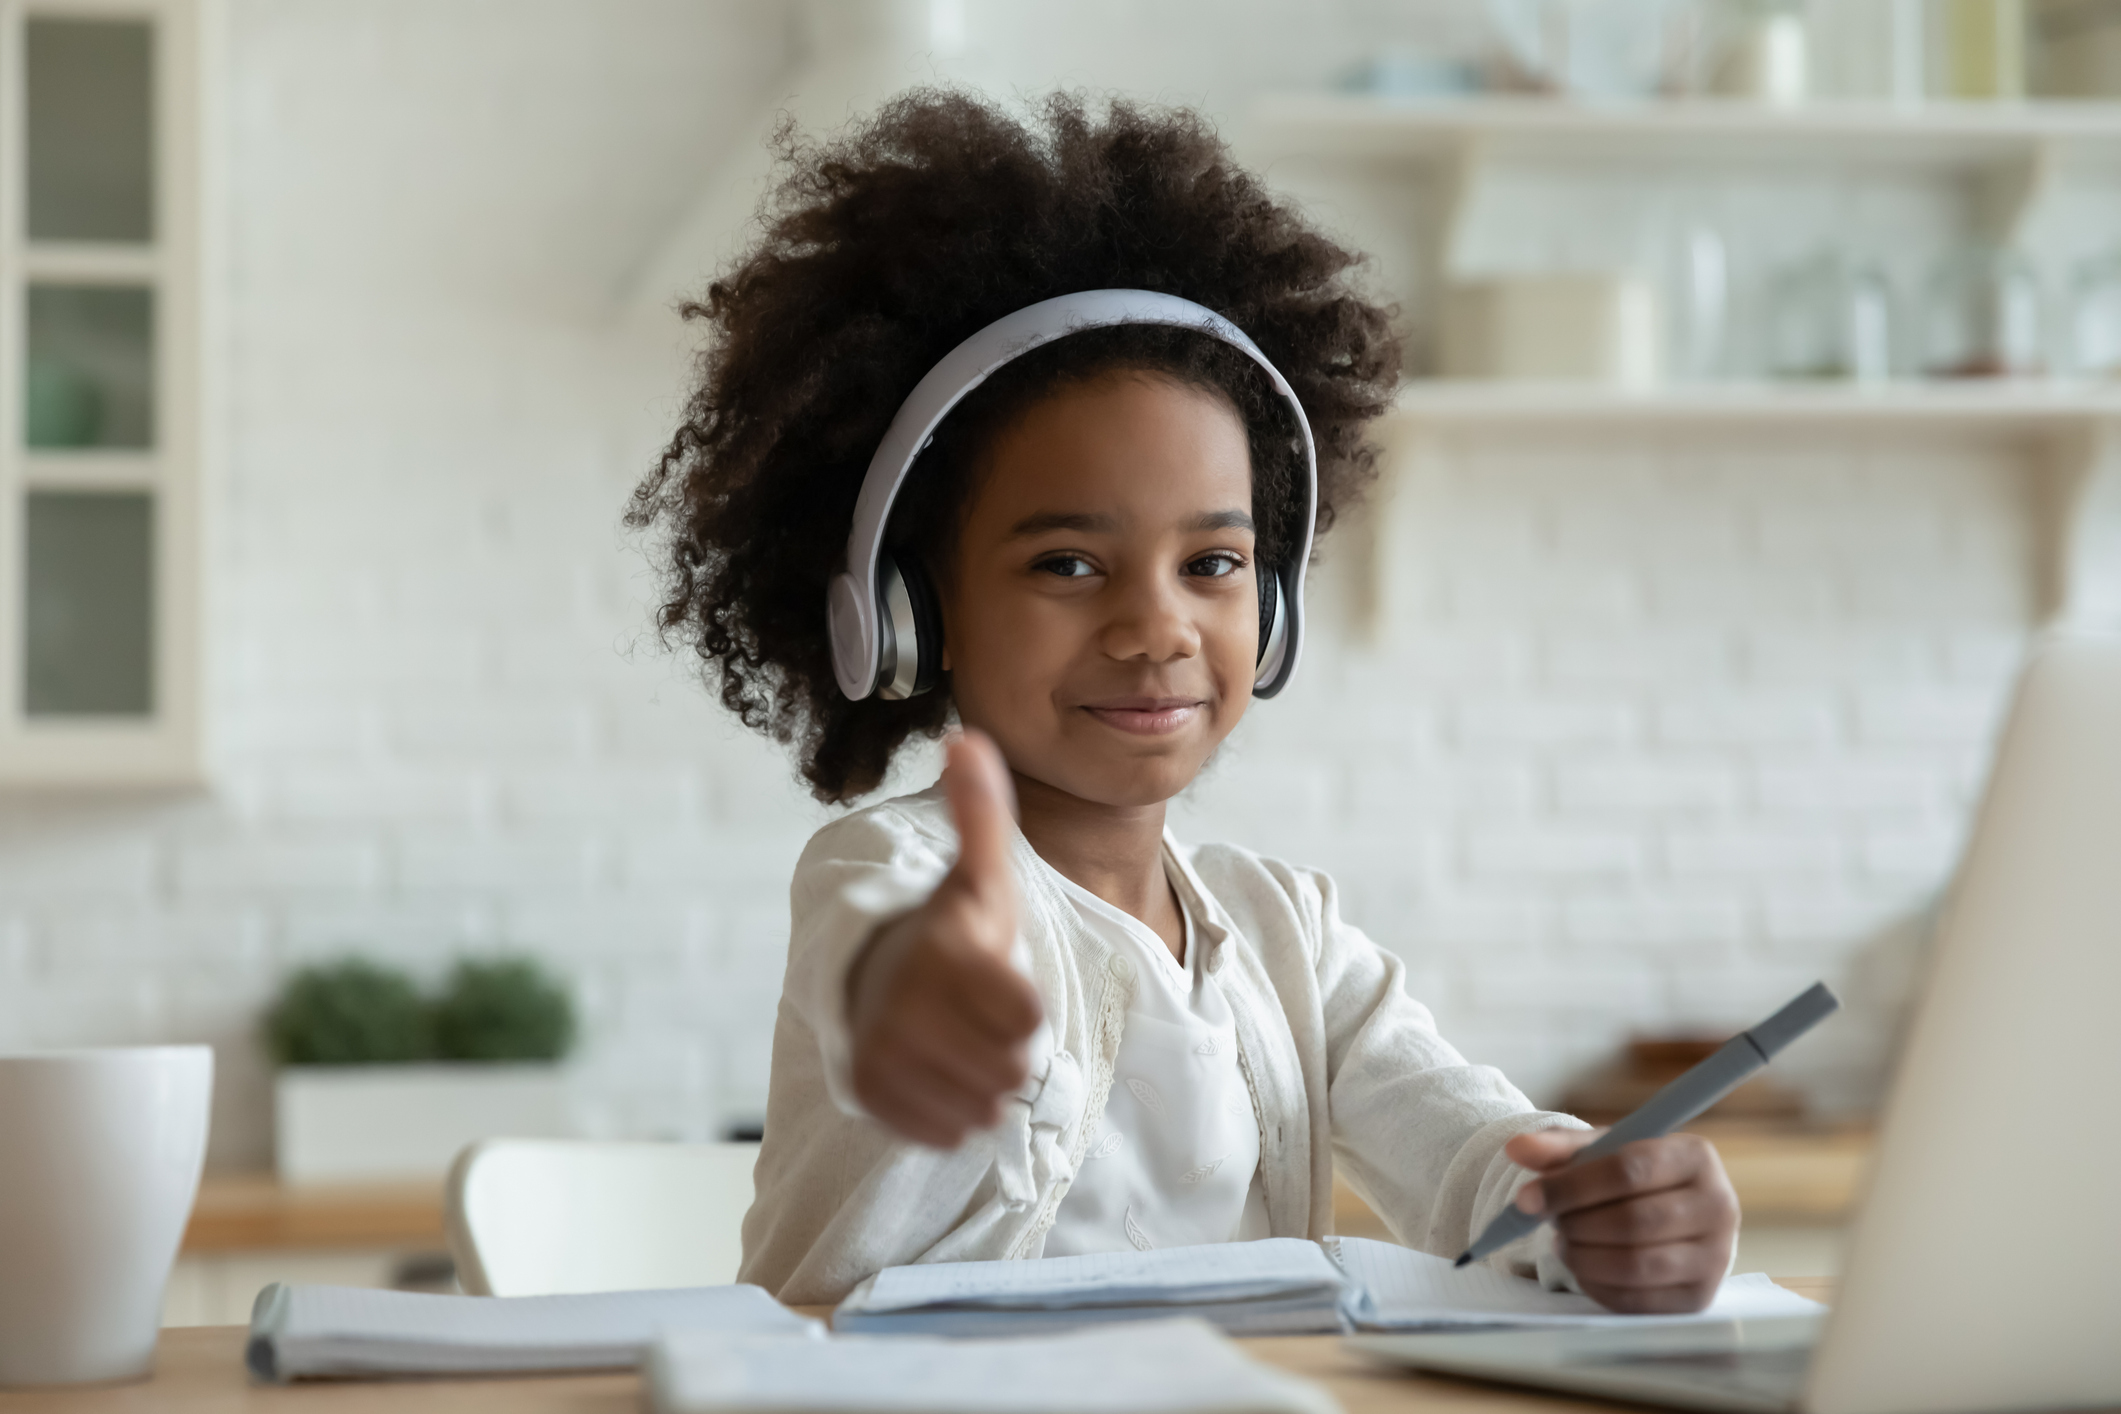 child at desk with headphones